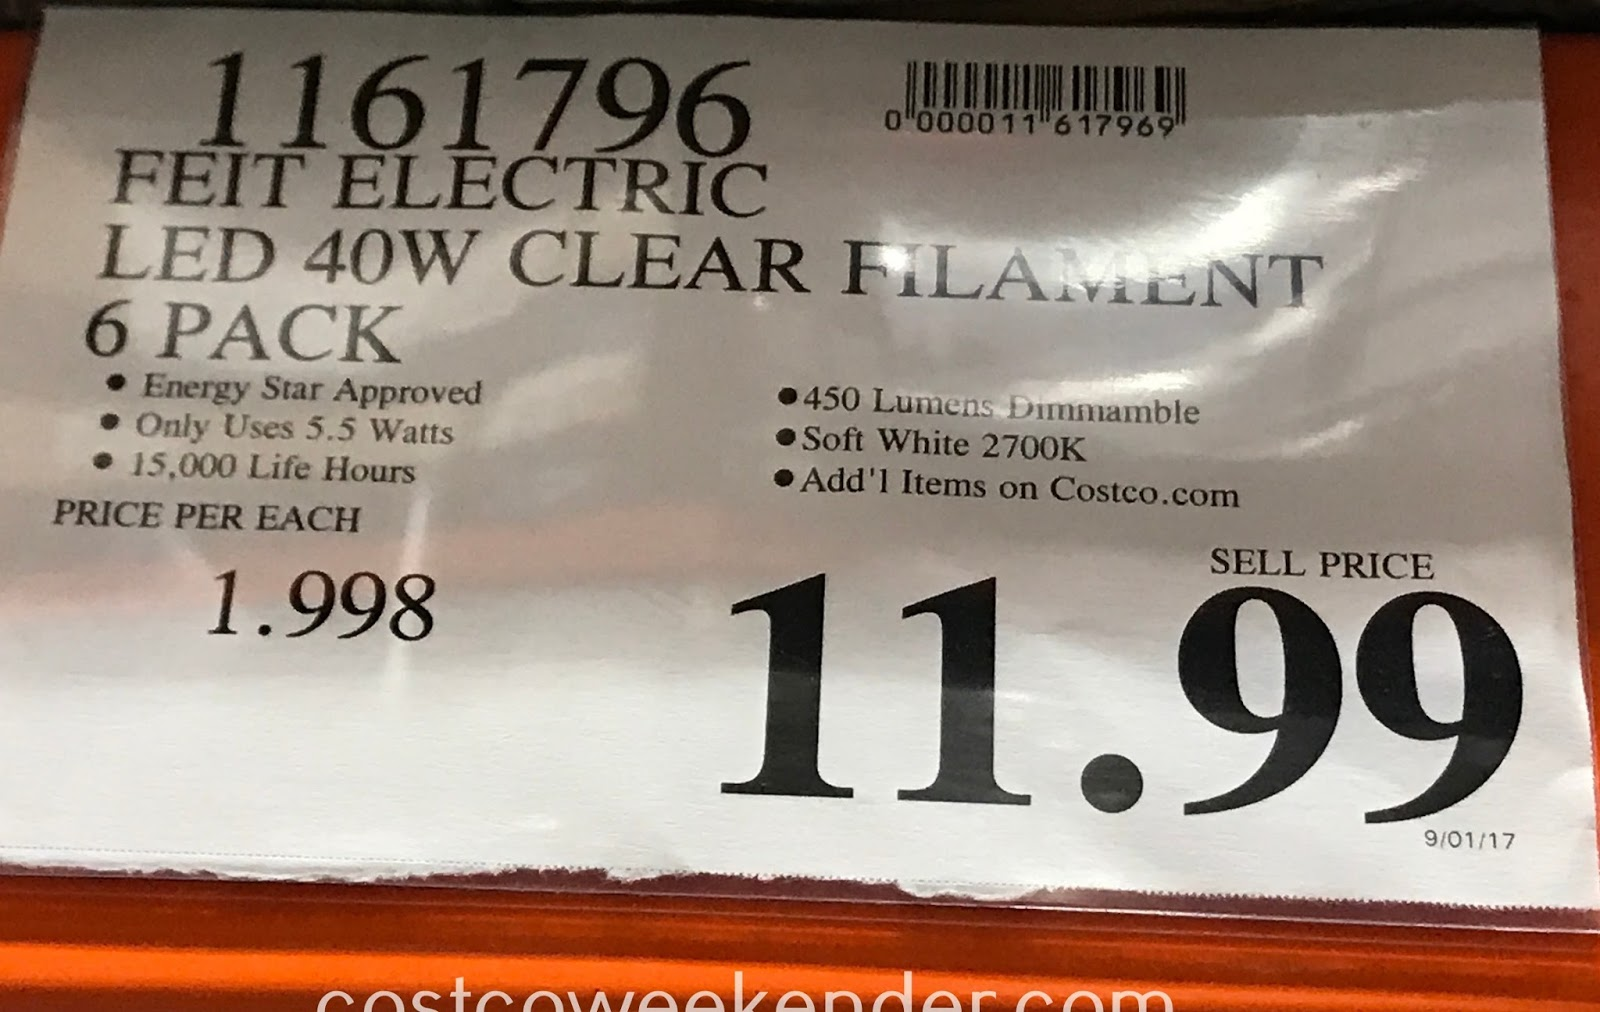 Deal for a 6 pack of Feit Electric 40W Clear Filament LED Lights at Costco